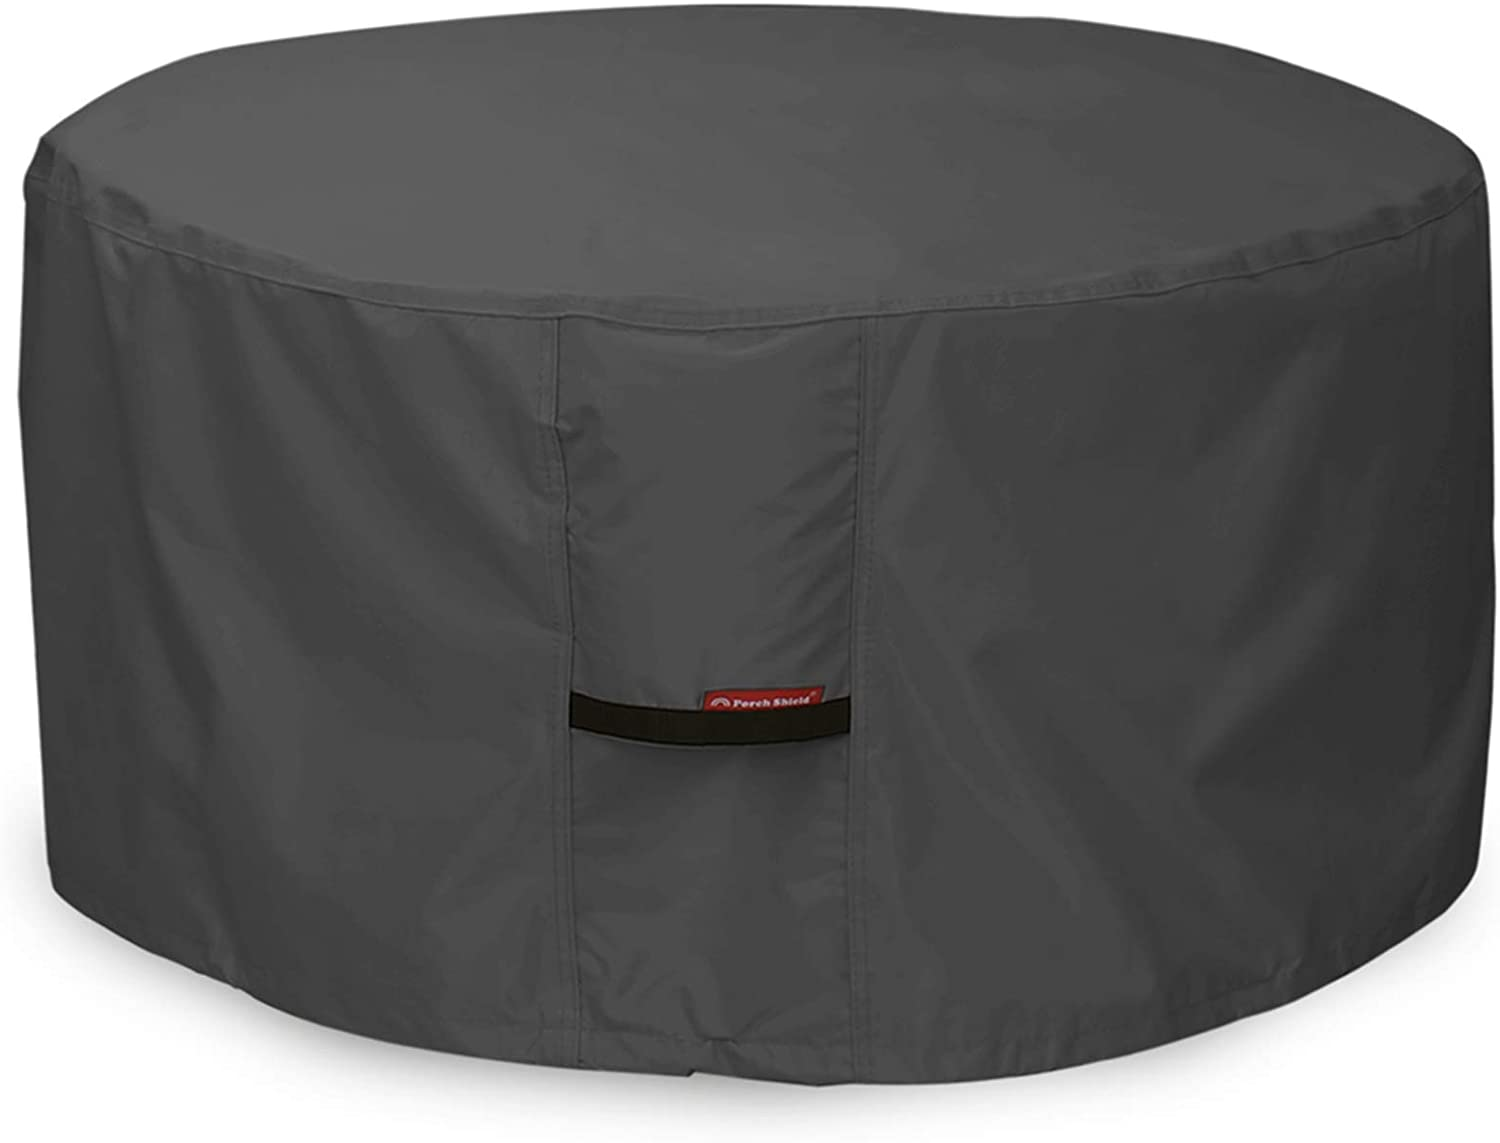 Porch Shield Fire Pit Cover - Waterproof Popular brand in the world Baltimore Mall Round 600D P Duty Heavy